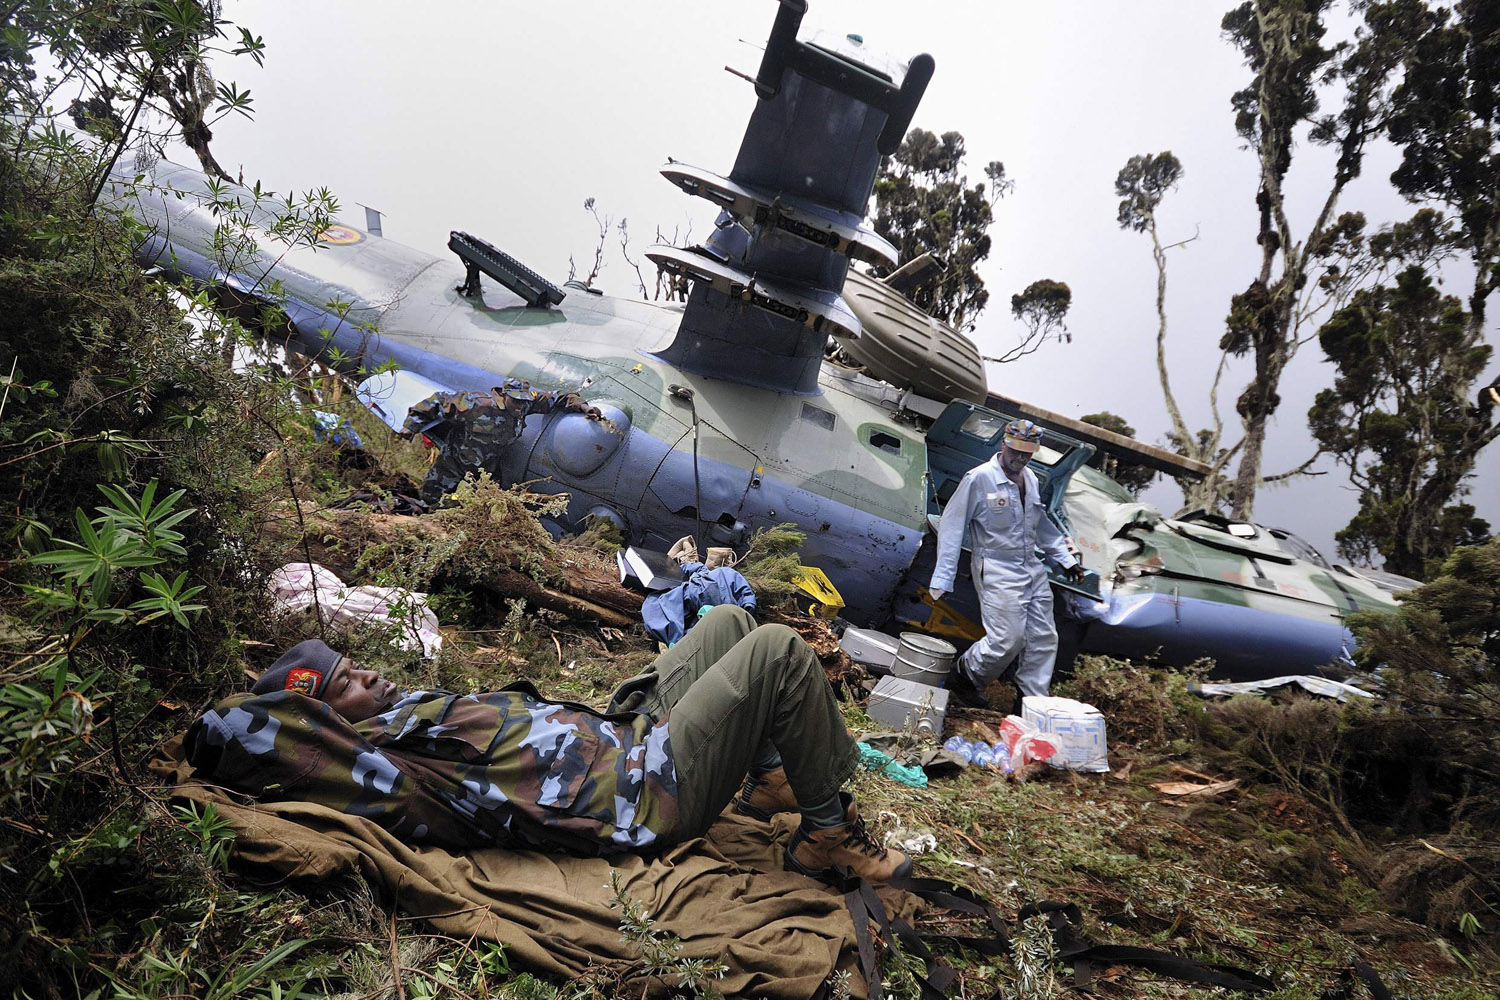 Aug. 13, 2012. The injured captain of a Somalia-bound Ugandan attack helicopter lies next to the crash site in Kenya.